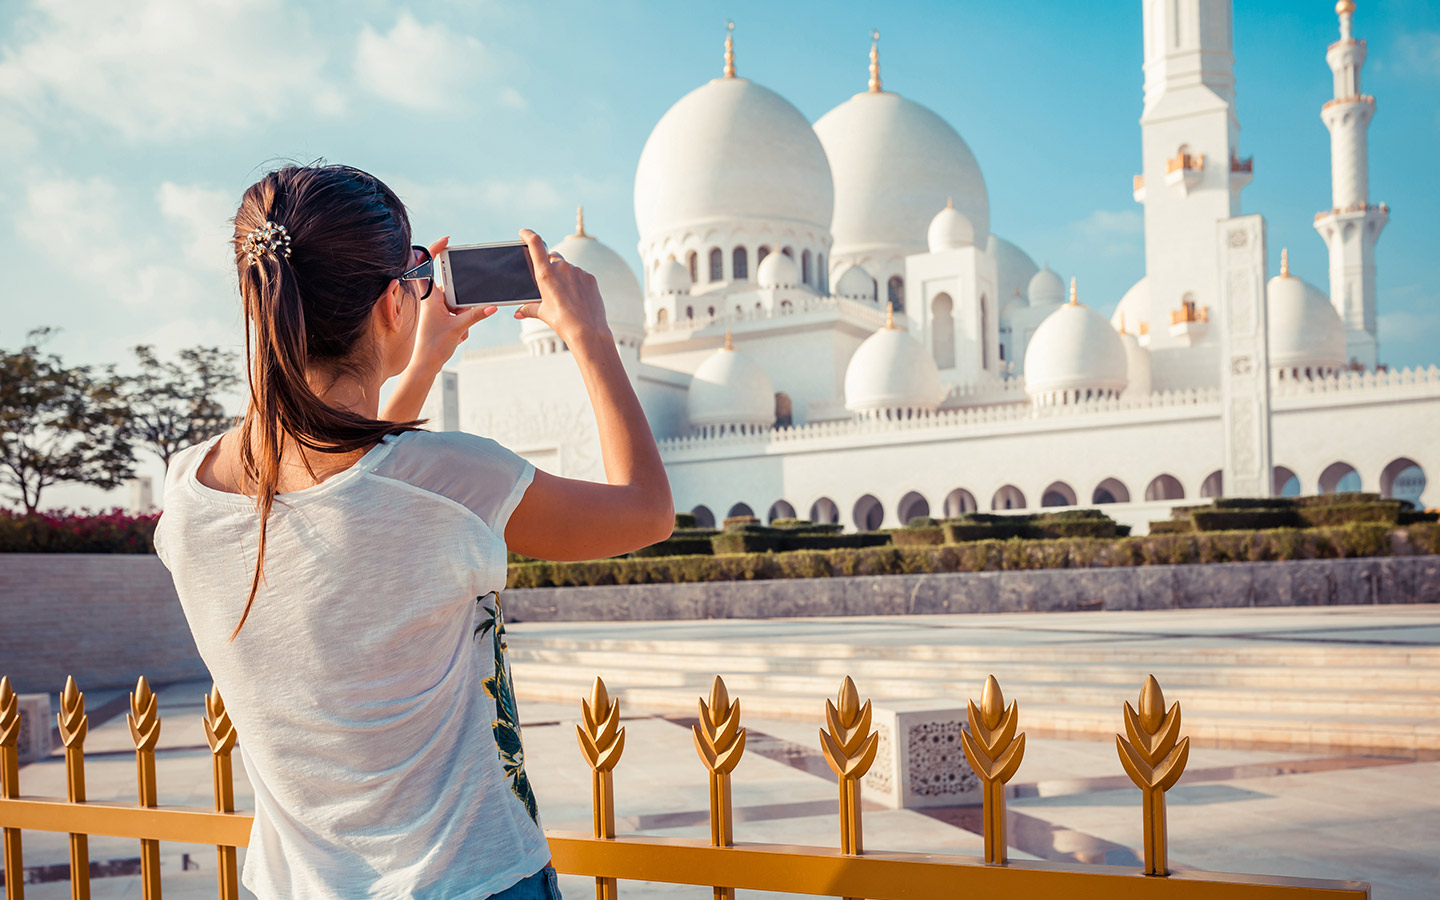 Tourist clicking a picture of Sheikh Zayed Mosque in Abu Dhabi